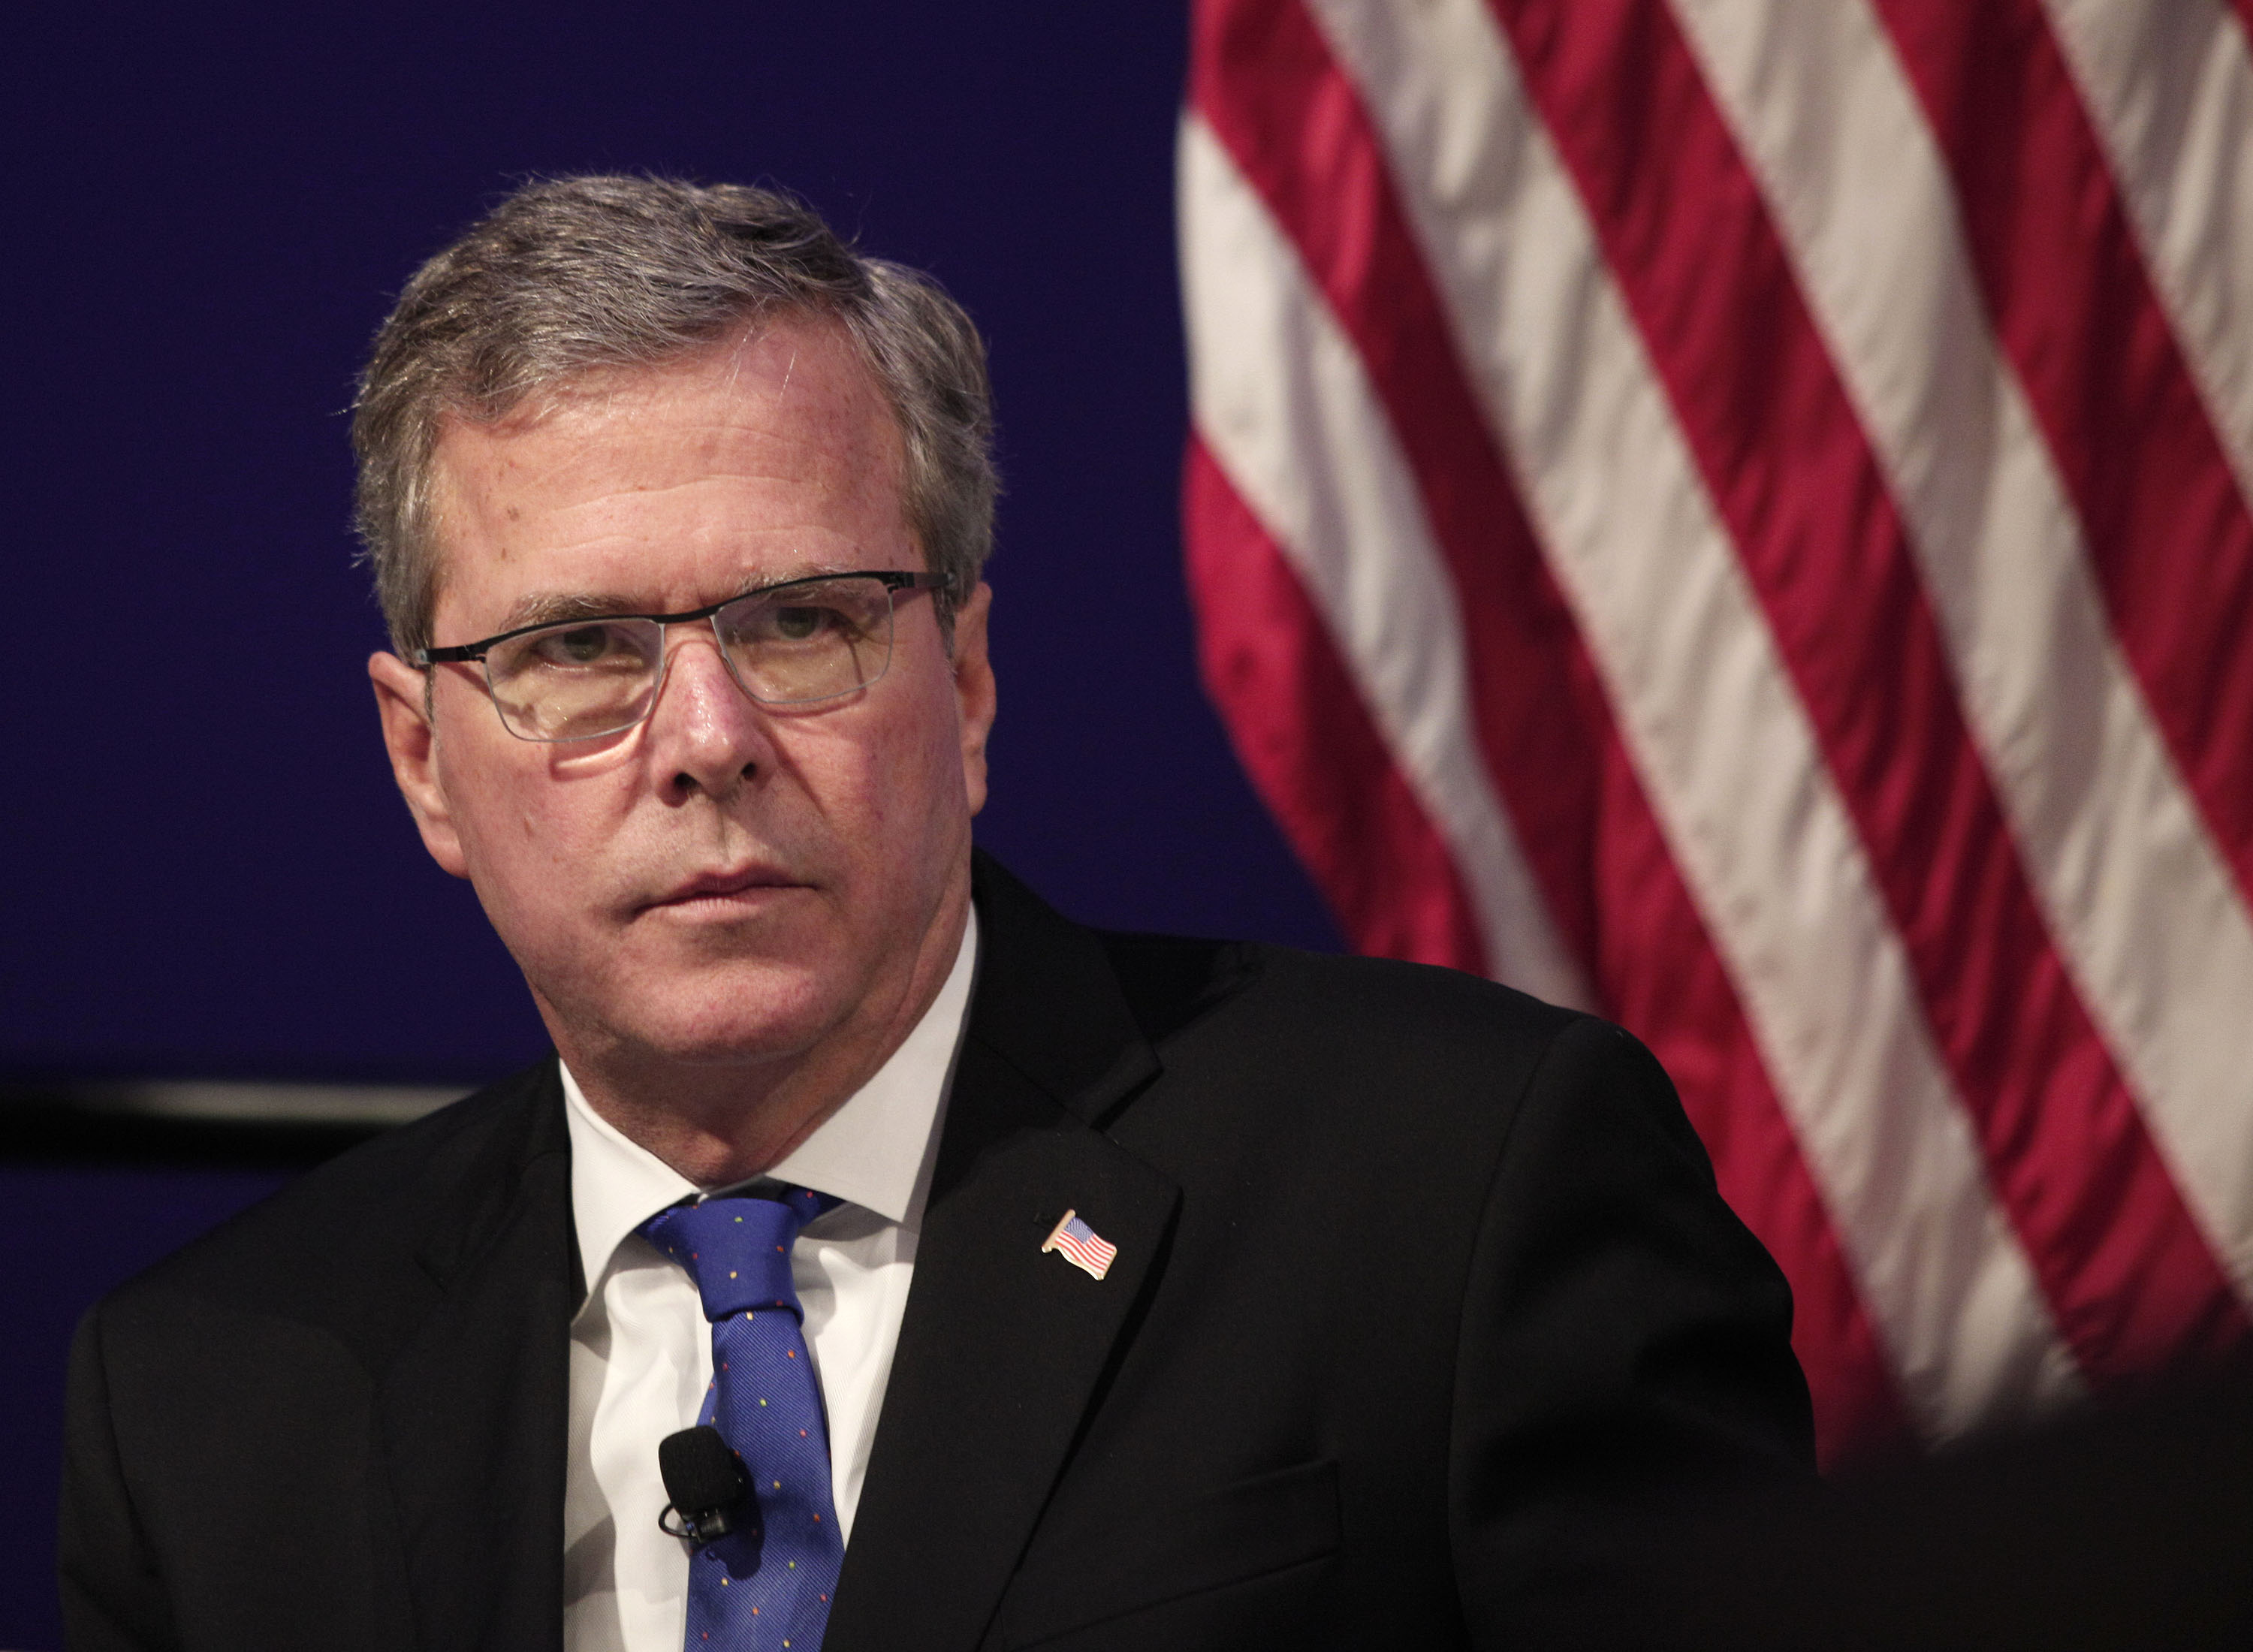 Former Florida Governor Jeb Bush waits to speak at the Detroit Economic Club on Feb. 4, 2015 in Detroit.